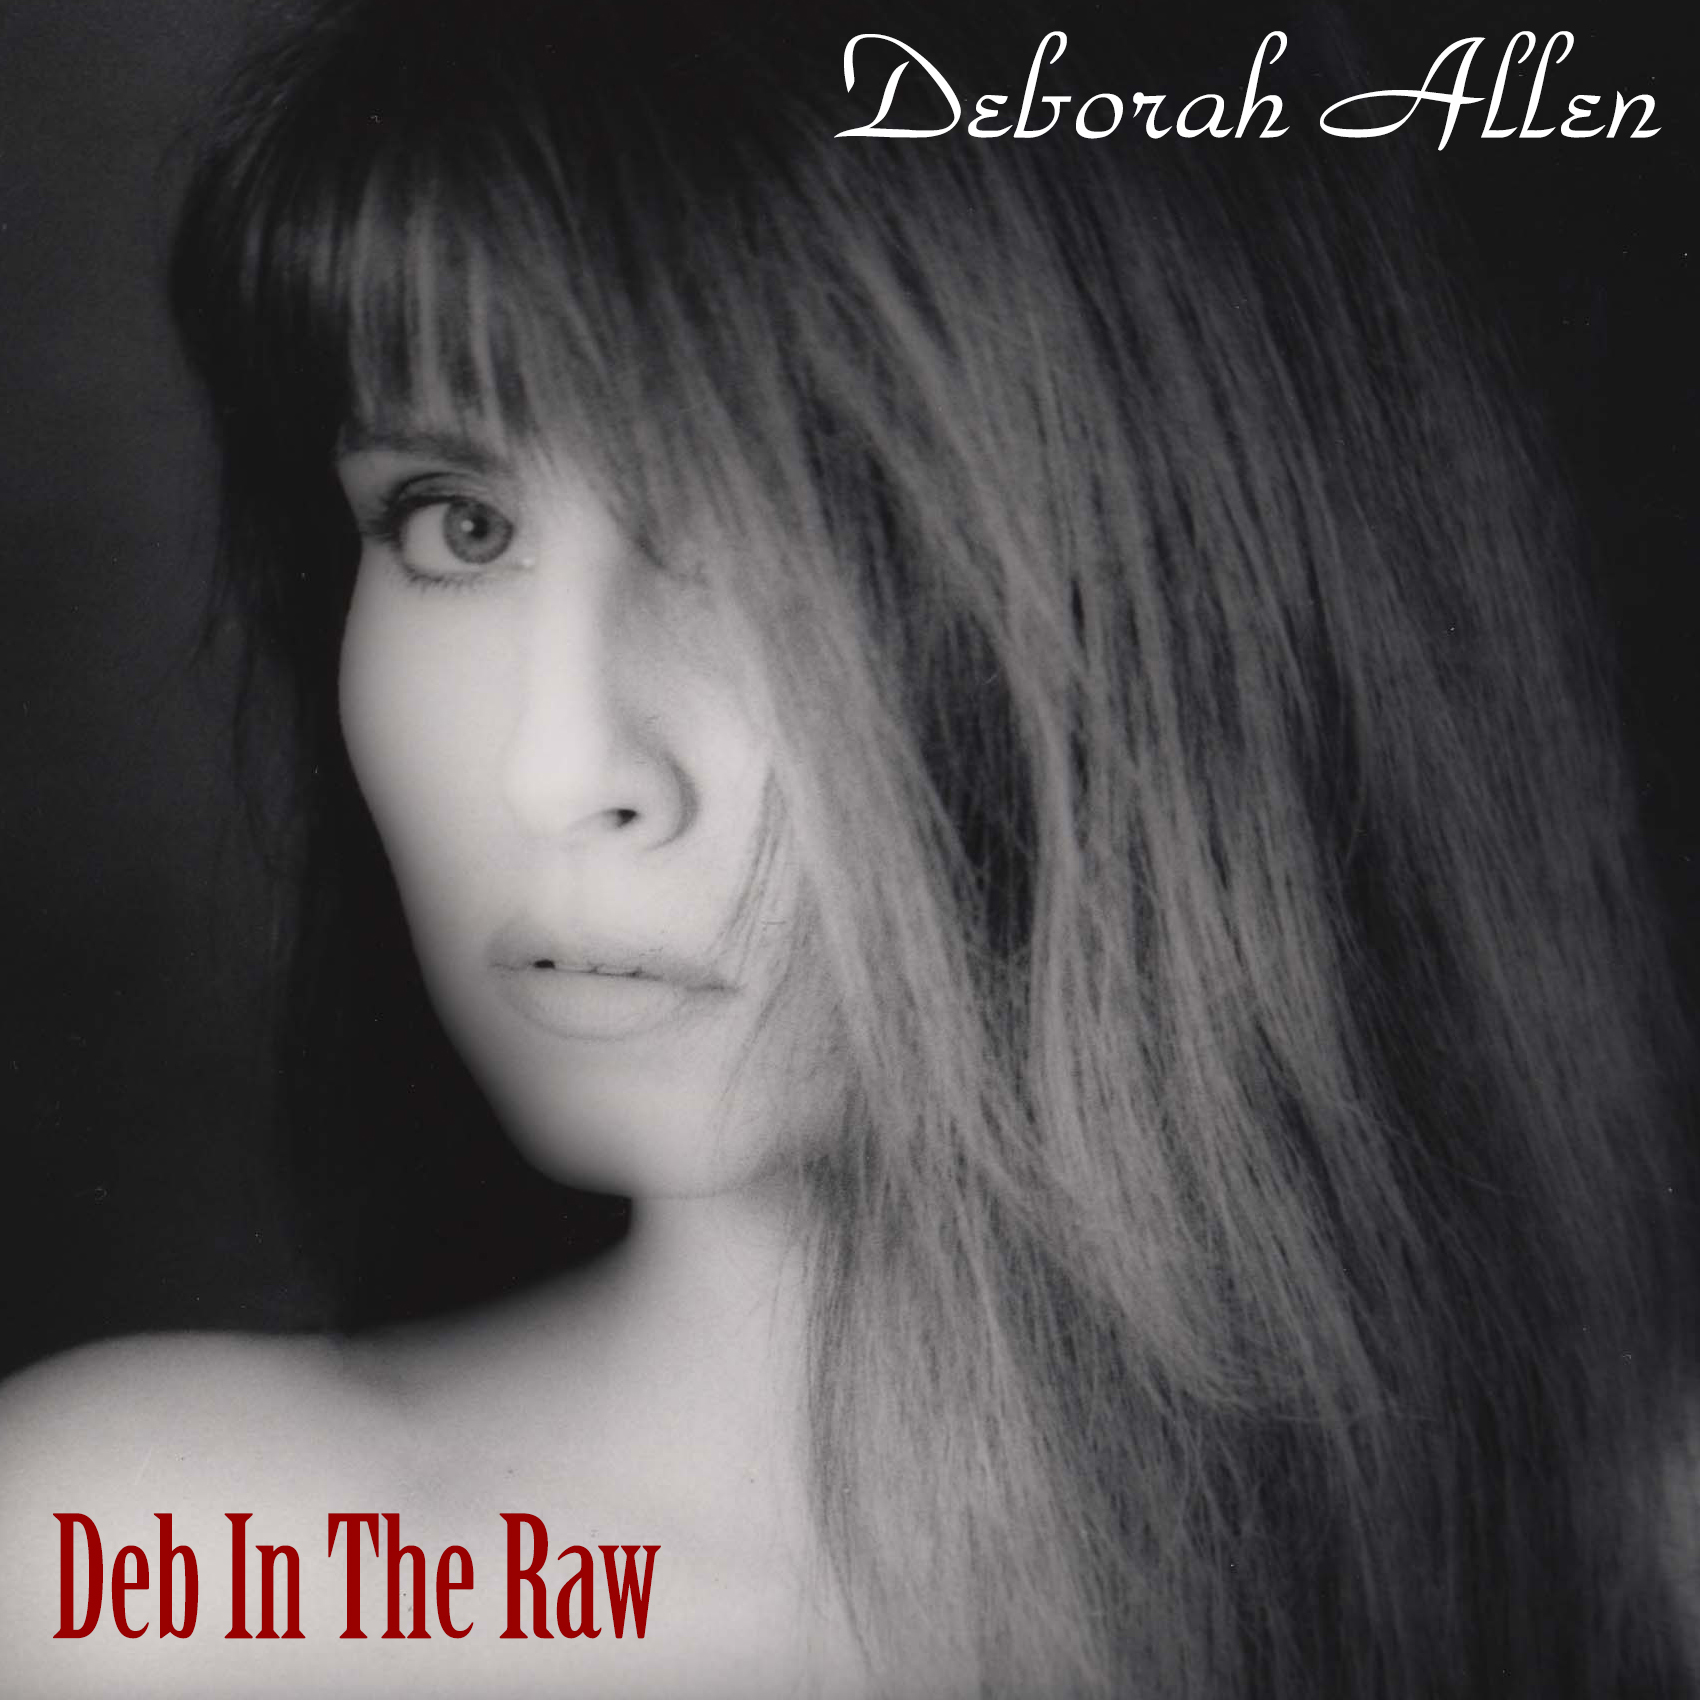 Deb In The Raw